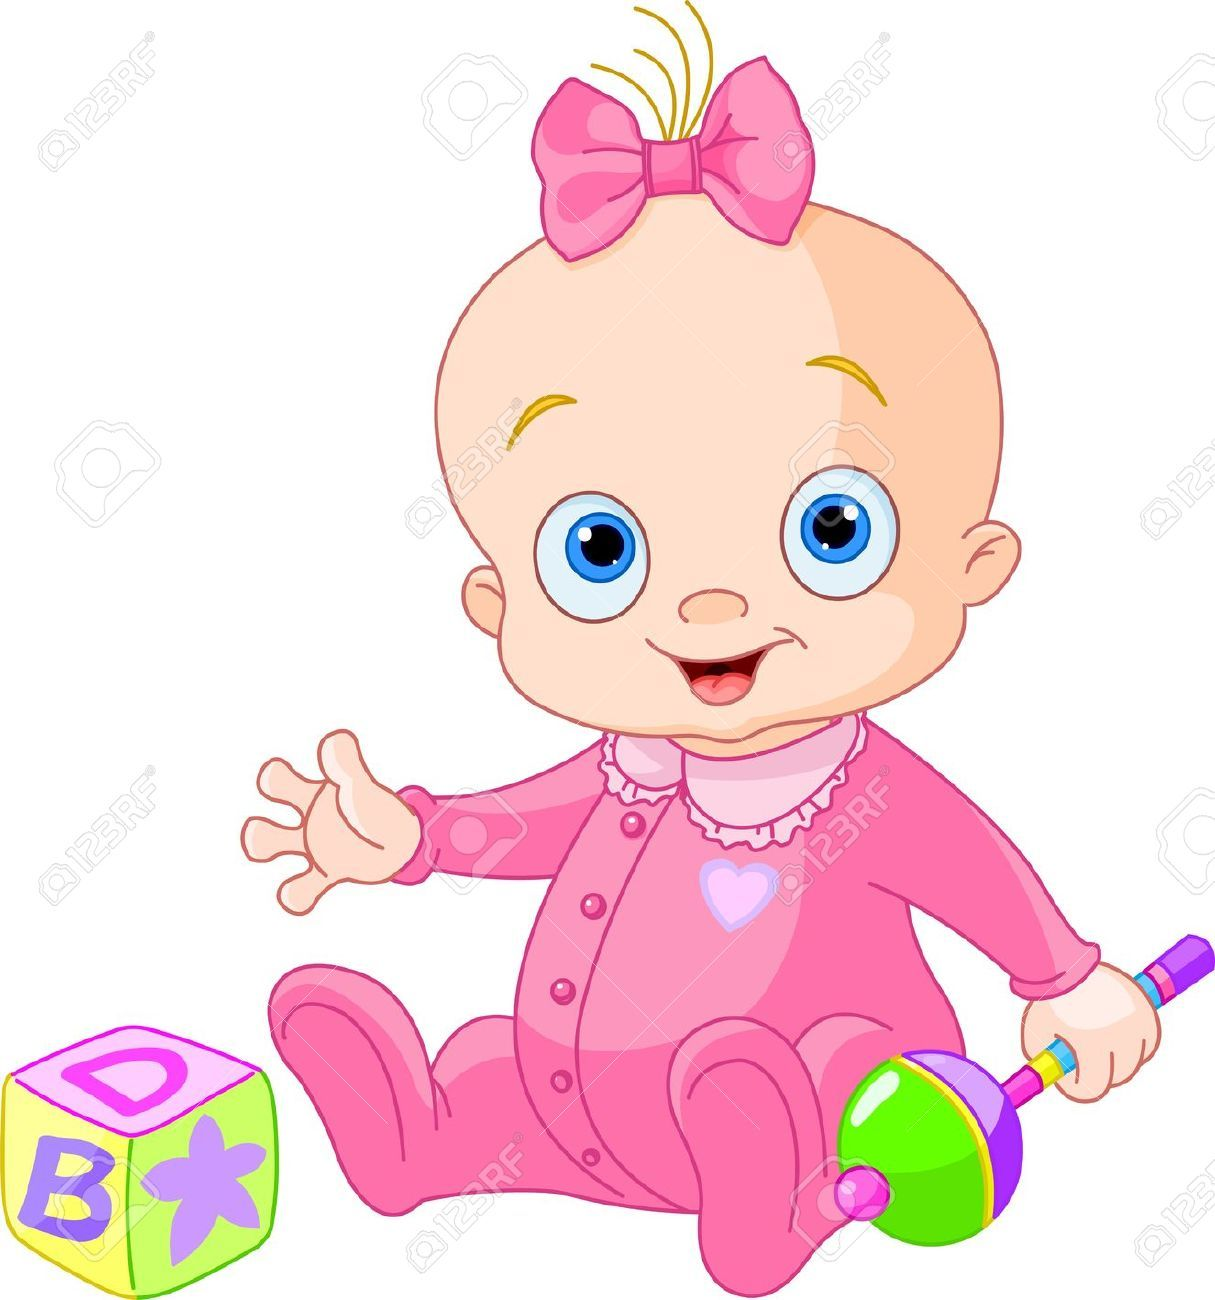 Baby Boy Cartoon Baby Toy Mobile Clipart Png Image With Transparent Background Png Free Png Images Baby Cartoon Baby Toys Free Baby Stuff